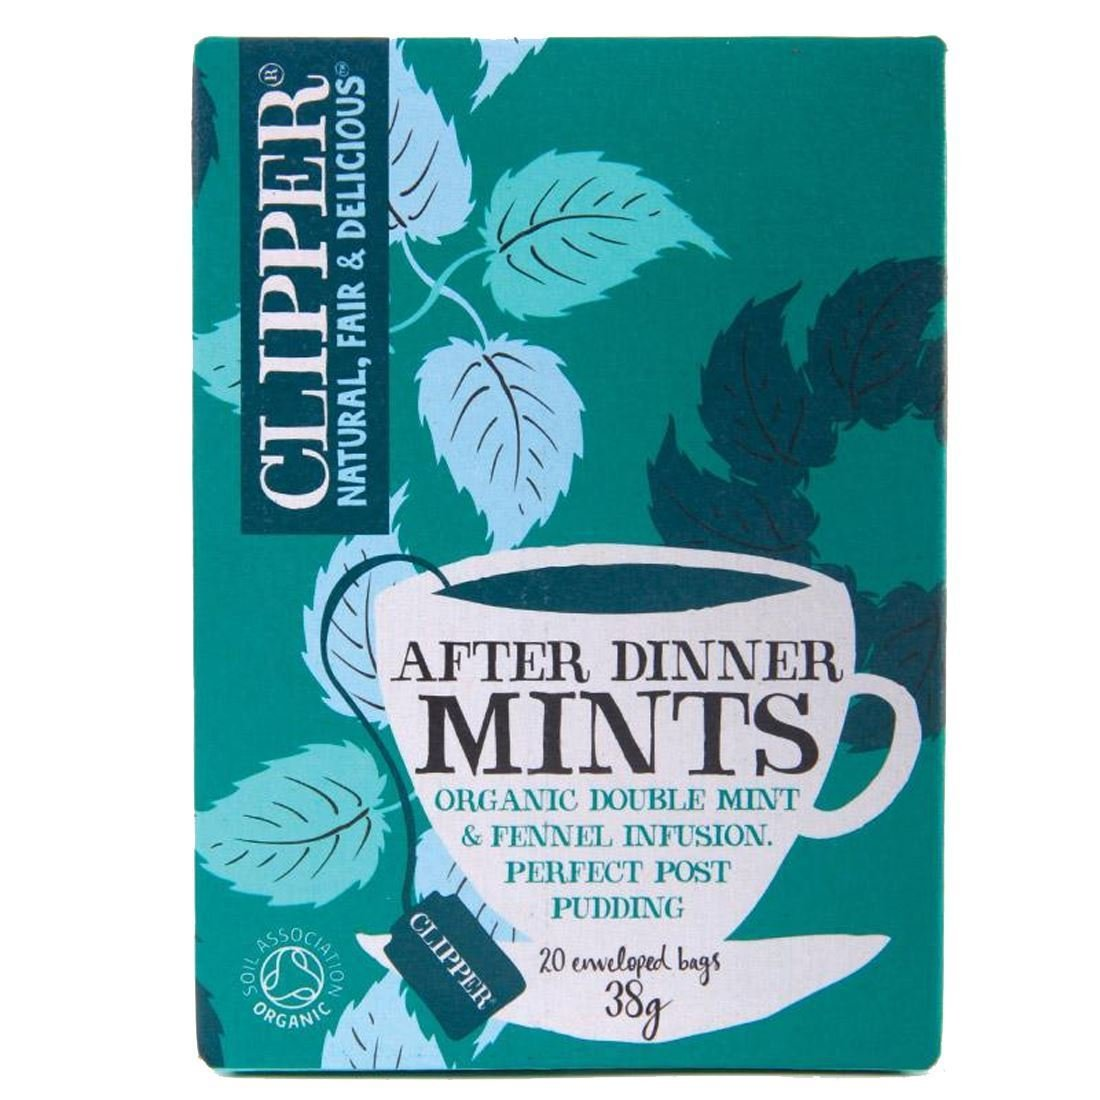 Clipper organic after dinner mints tea bundle (soil association) (infusions) (after dinner mints) (6 packs of 20 bags) (120 bags) (a spicy tea with aromas of fennel, peppermint, spearmint) (brews in 3-5 minutes)